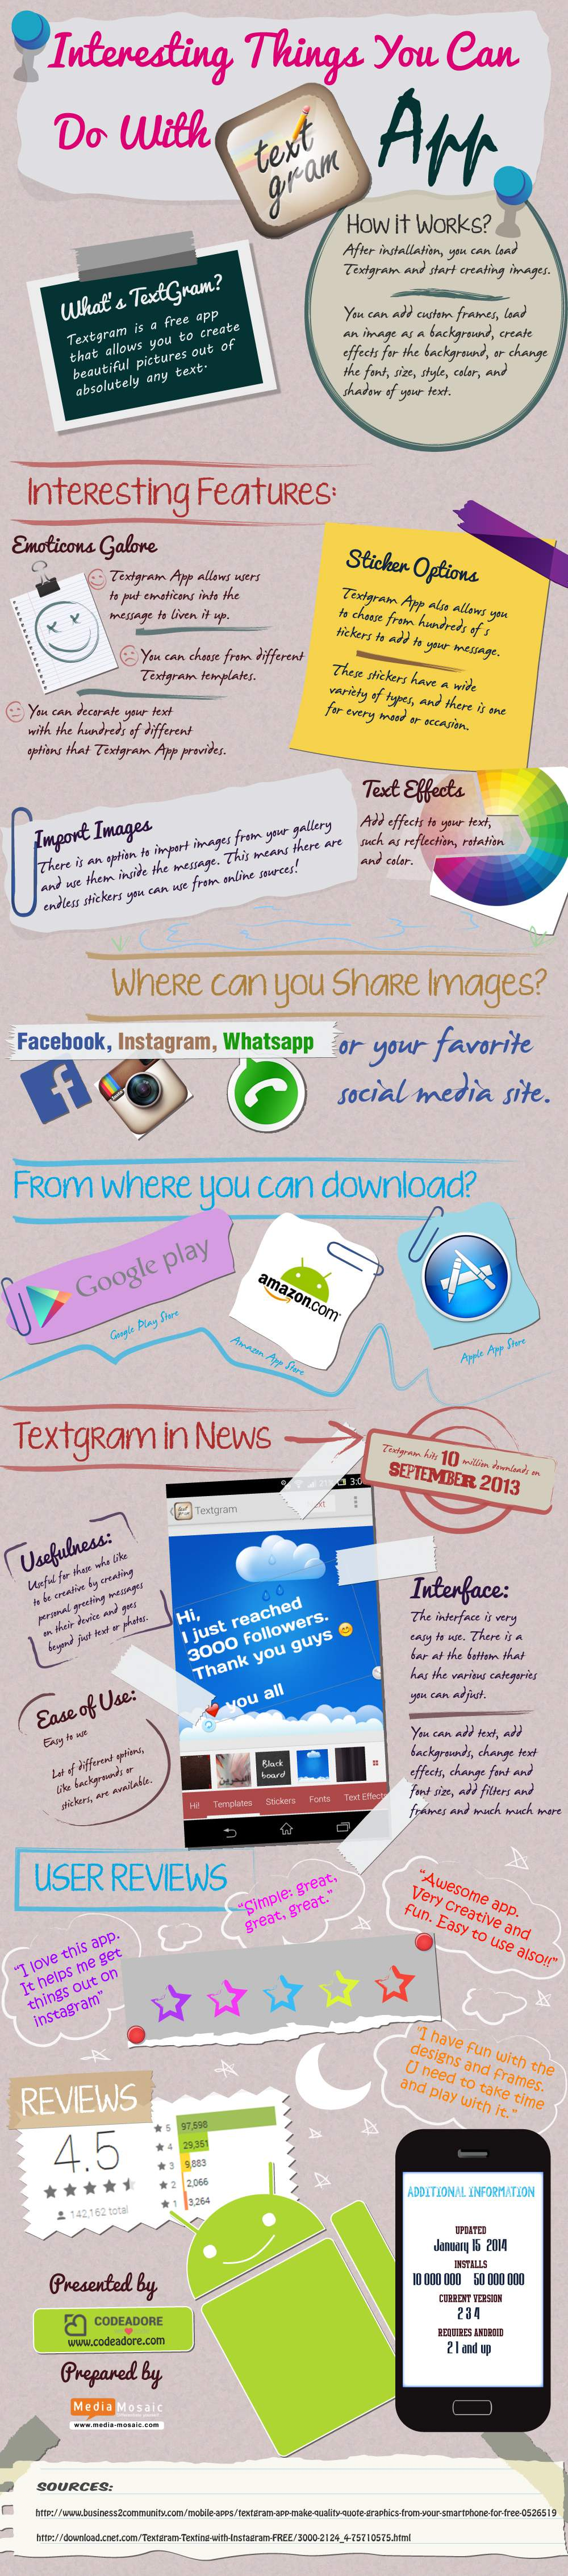 Textgram Application For Beautiful Text Design - Image 1